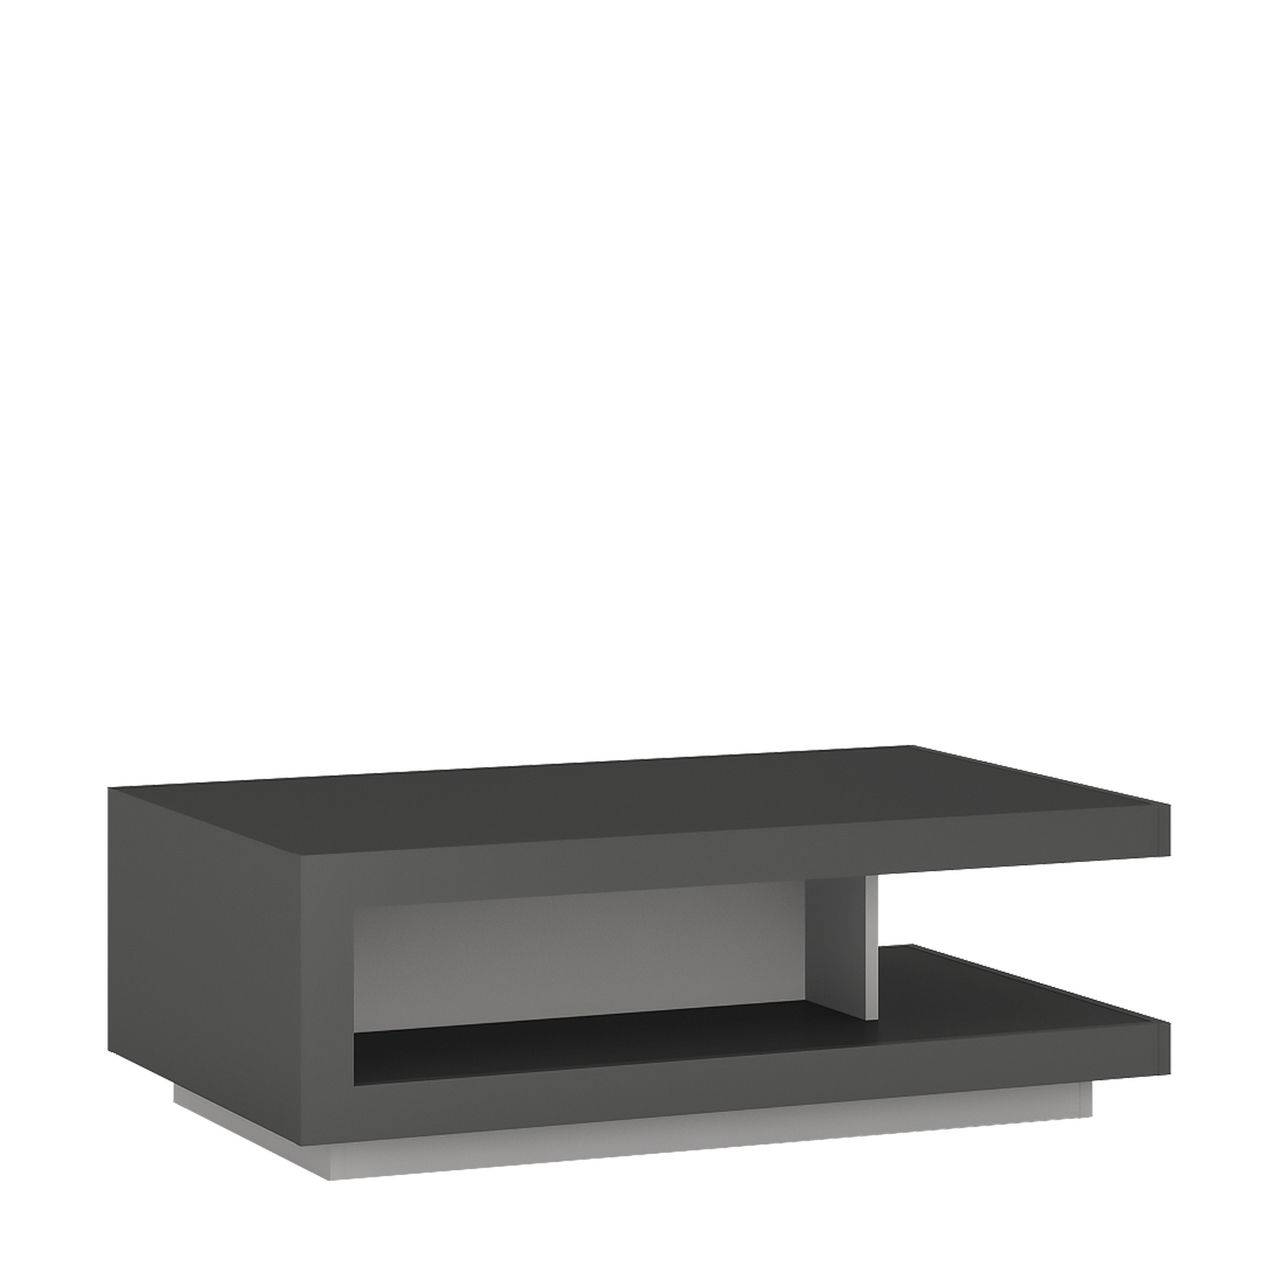 The Brooklyn Dusk Coffee Table Stationary Coffee Table Modern Furniture Living Room Coffee Table Furniture